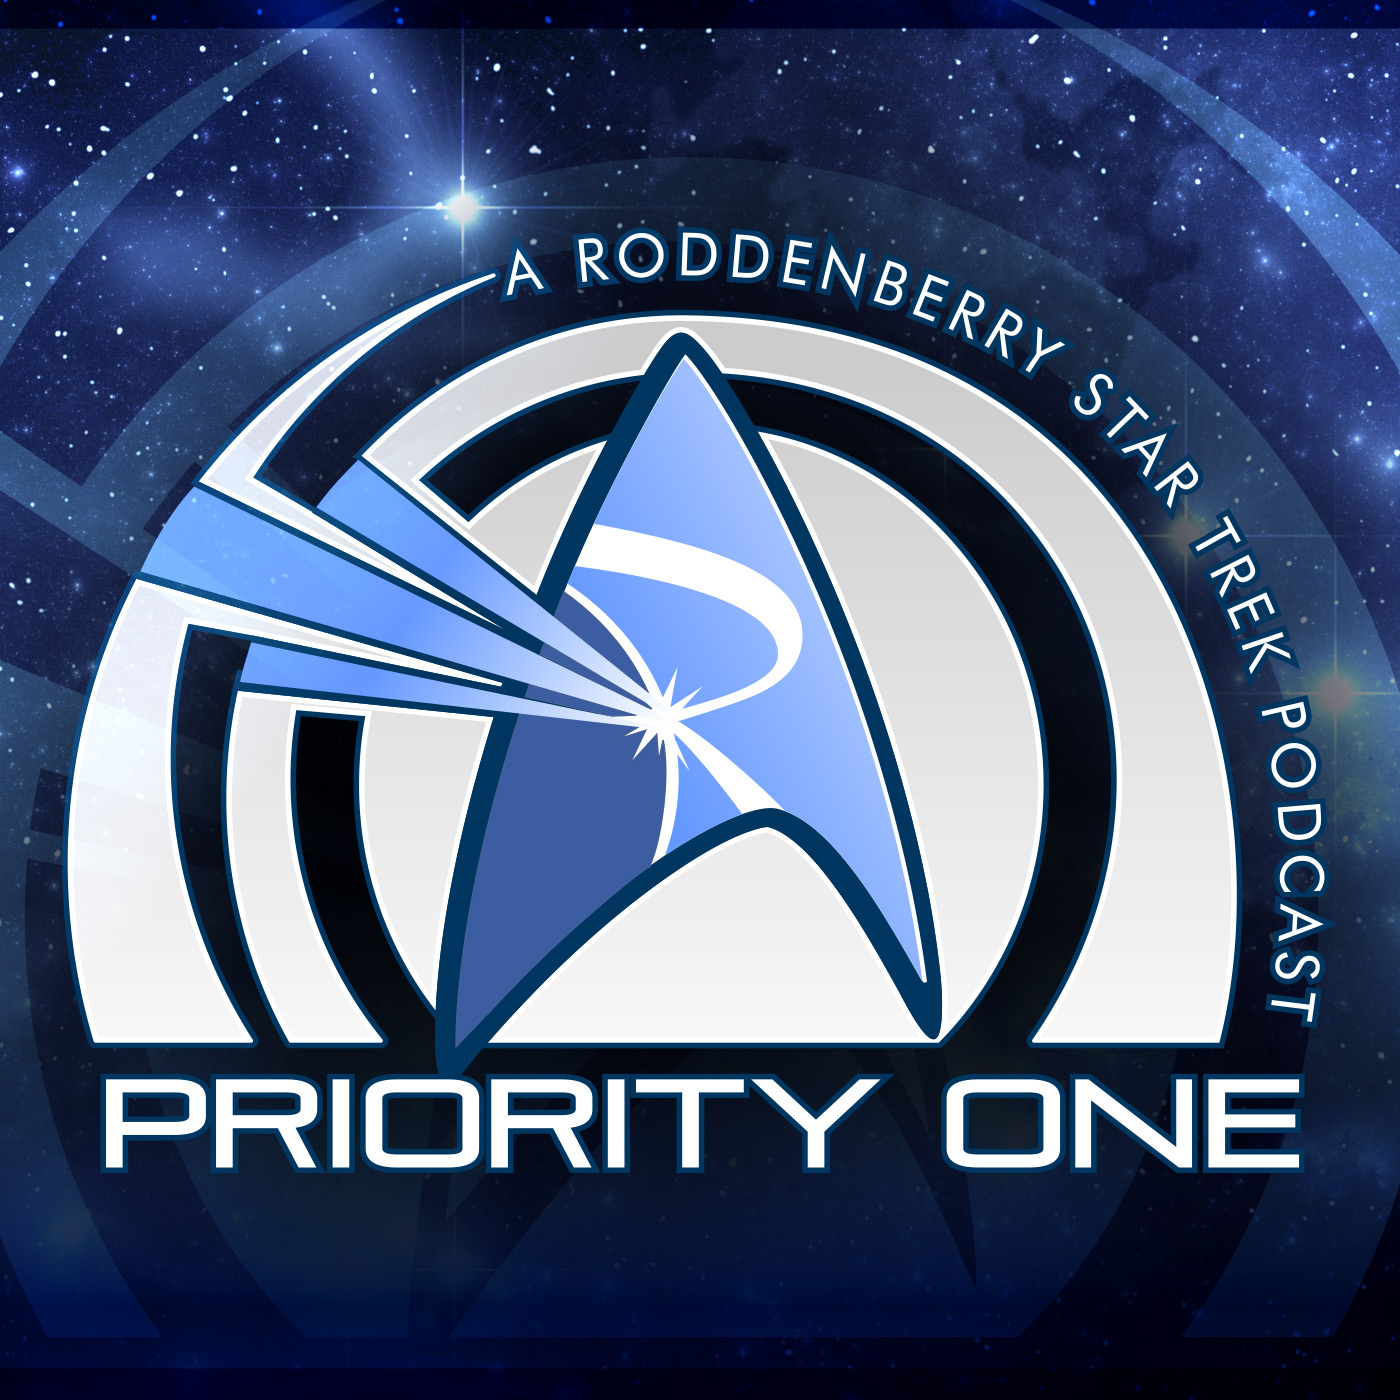 Artwork for 388 - New Star Trek (TM) | Priority One: A Roddenberry Star Trek Podcast